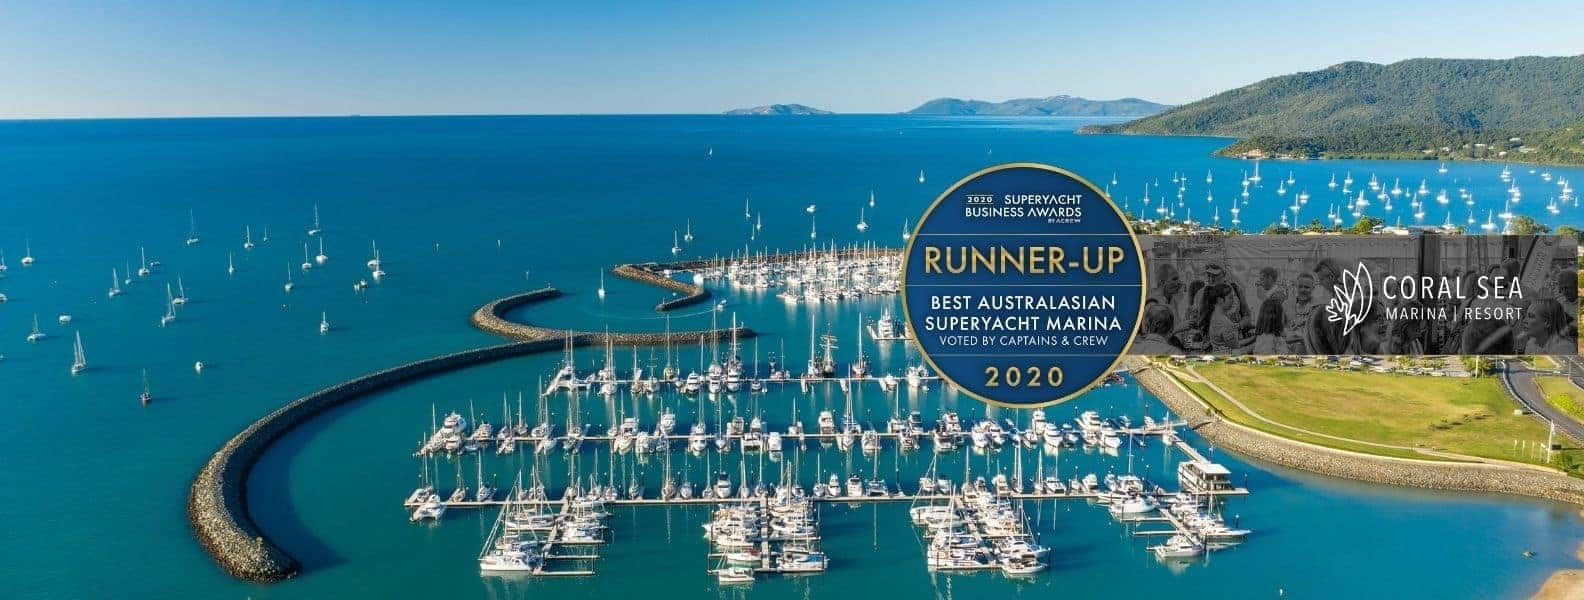 Aerial image of Coral Sea Marina Resort as the ACREW Runner Up for Best Marina